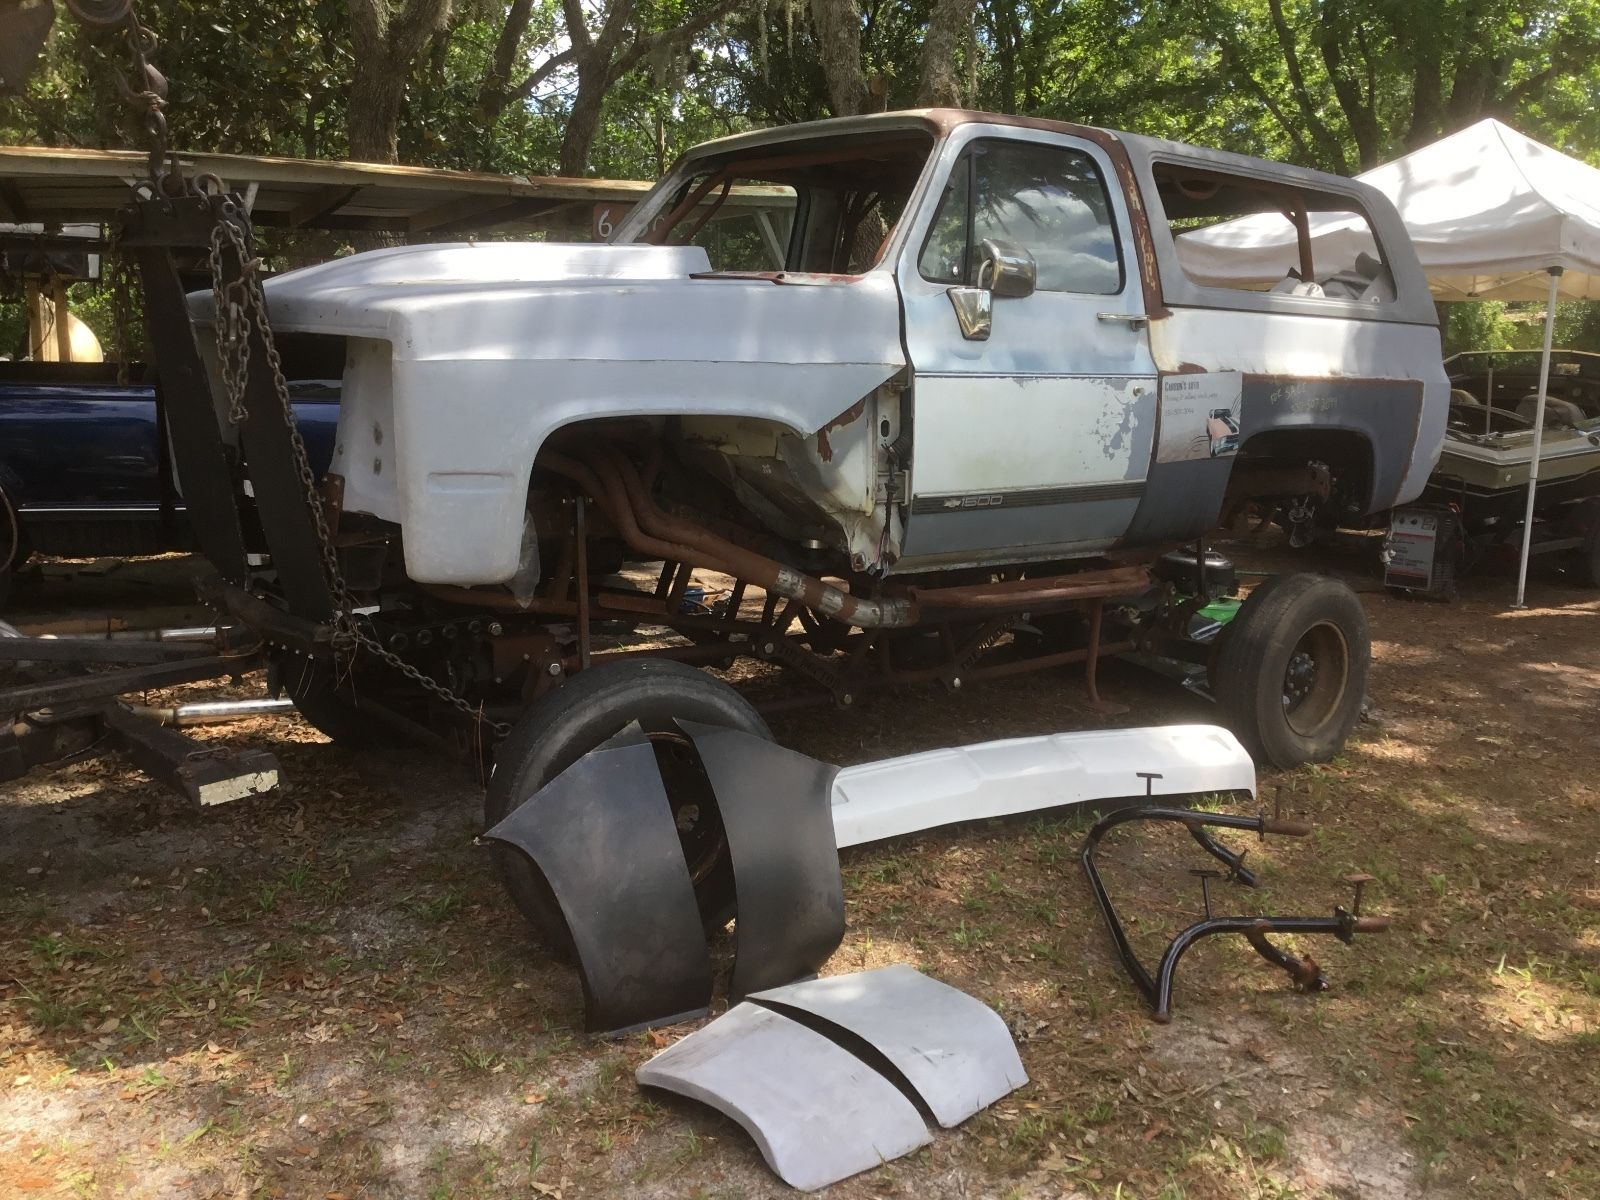 Project to build 1990 Chevrolet Silverado 1500 monster for ...